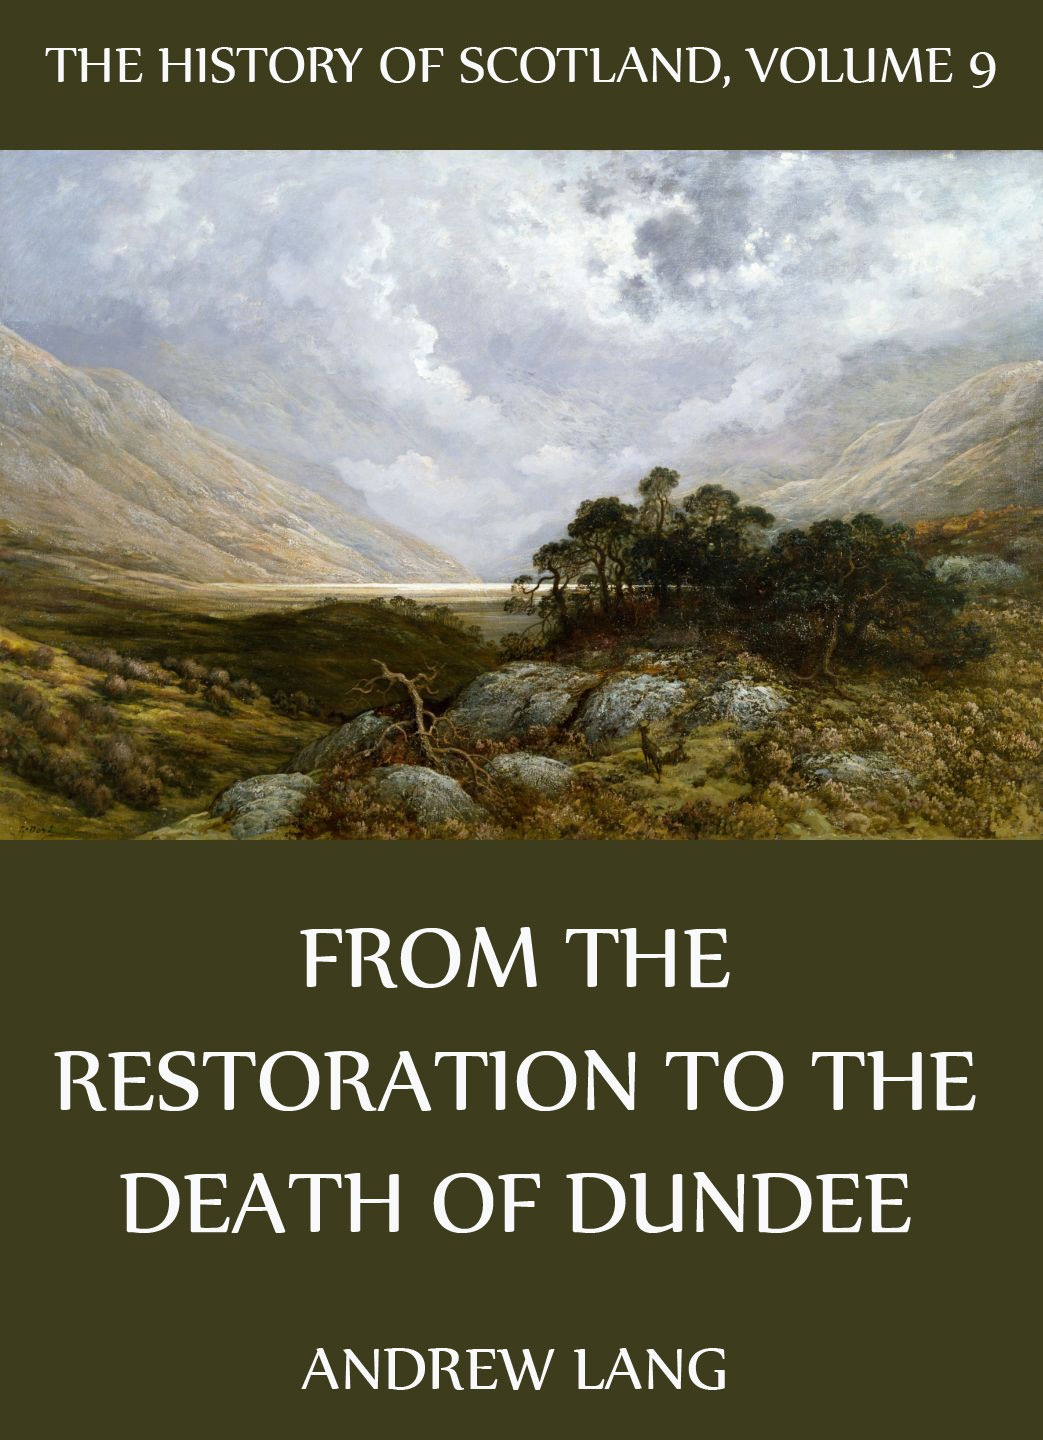 Фото - Andrew Lang The History Of Scotland - Volume 9: From The Restoration To The Death Of Dundee m guizot history of richard cromwell and the restoration of charles ii volume 2